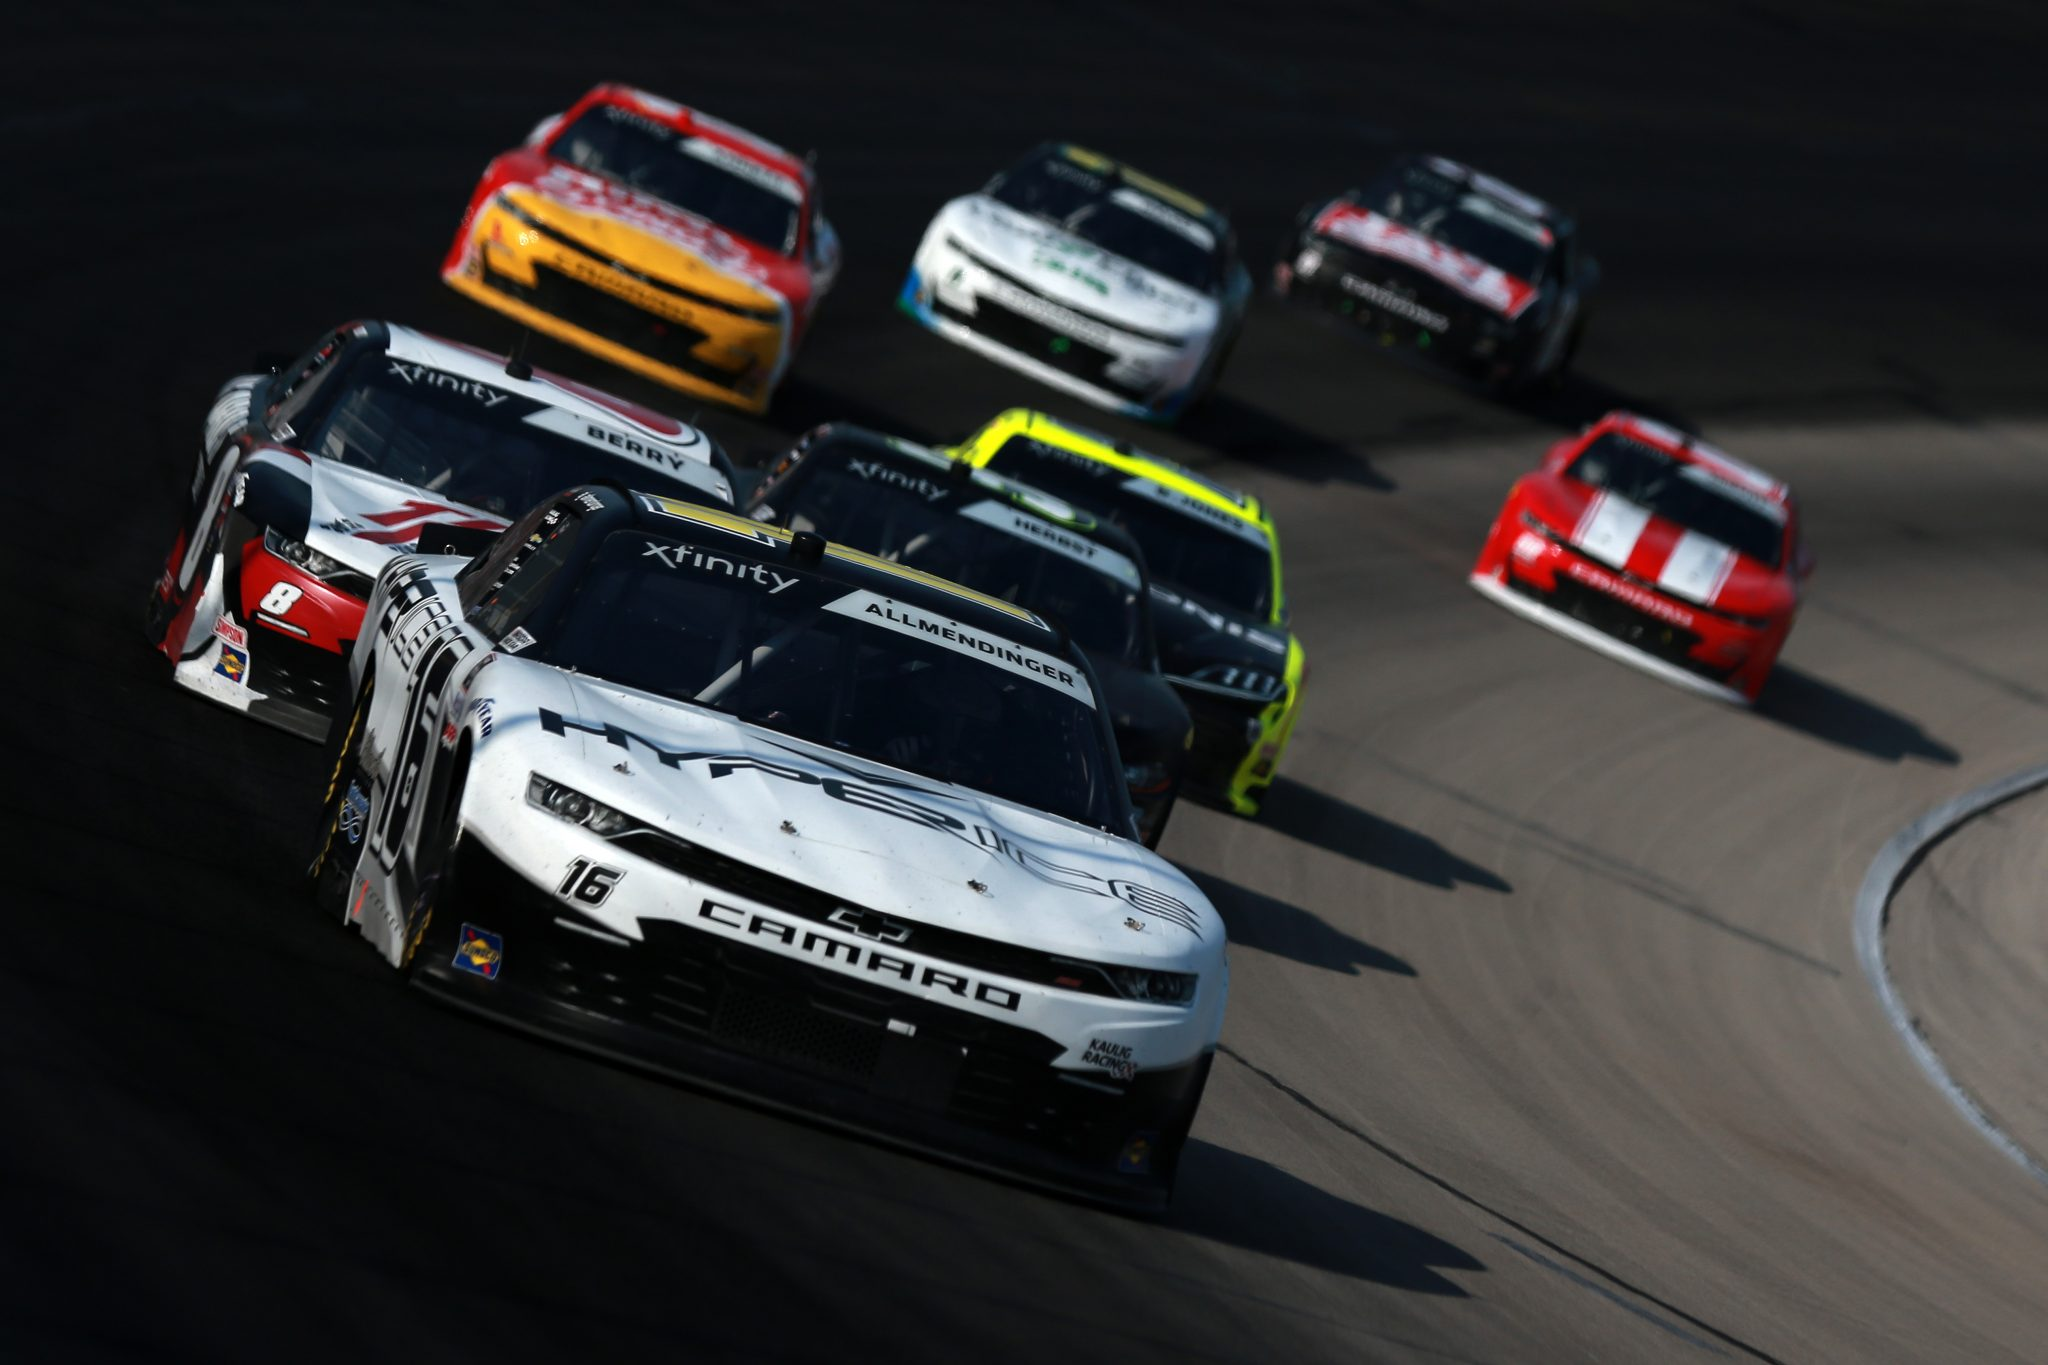 FORT WORTH, TEXAS - JUNE 12: AJ Allmendinger, driver of the #16 Hyperice Chevrolet, leads the field during the NASCAR Xfinity Series Alsco Uniforms 250 at Texas Motor Speedway on June 12, 2021 in Fort Worth, Texas. (Photo by Sean Gardner/Getty Images) | Getty Images